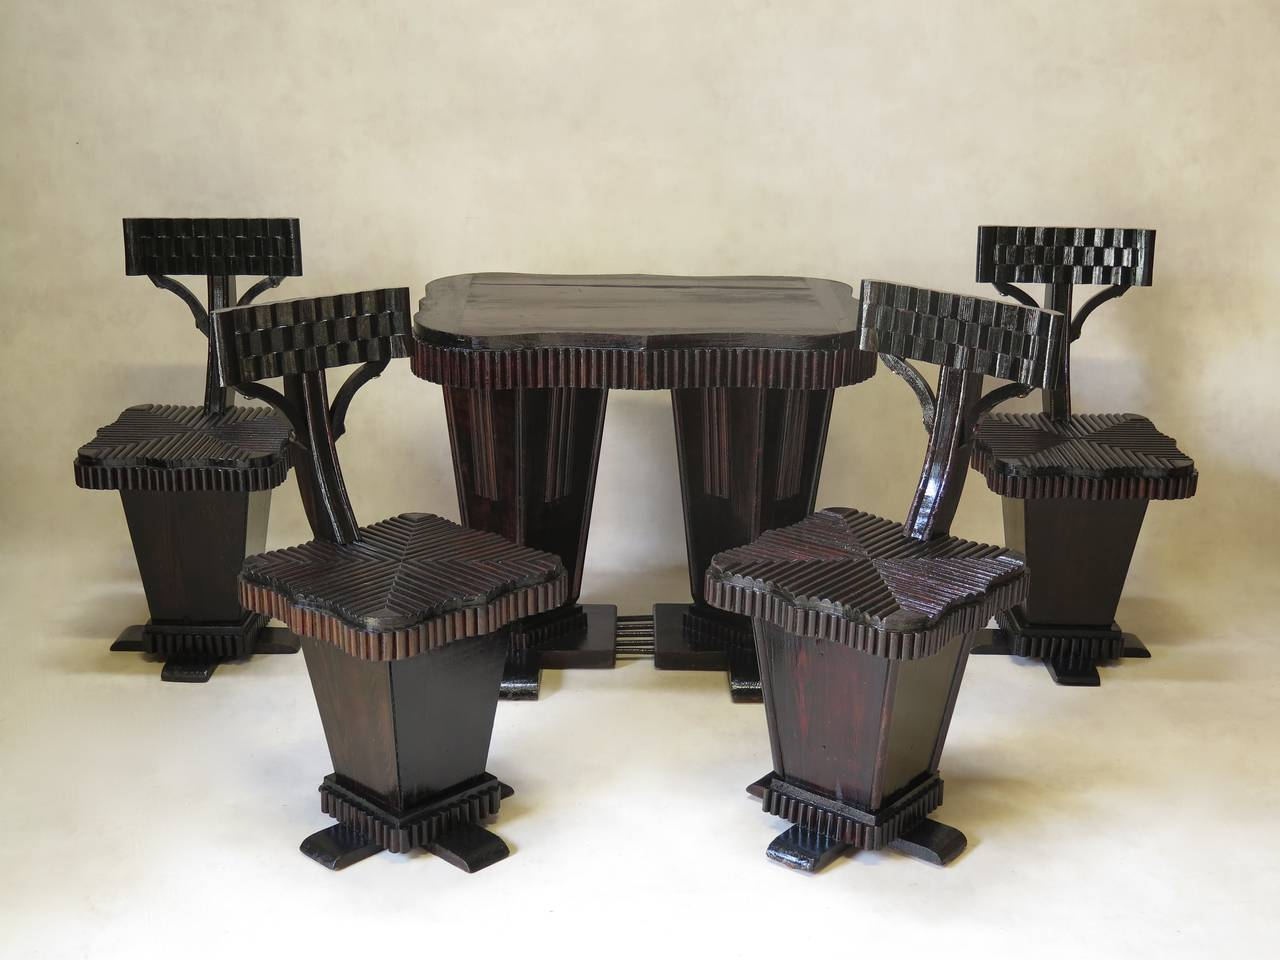 Unusual Chairs Unusual Art Deco Table And Chair Set France 1930s For